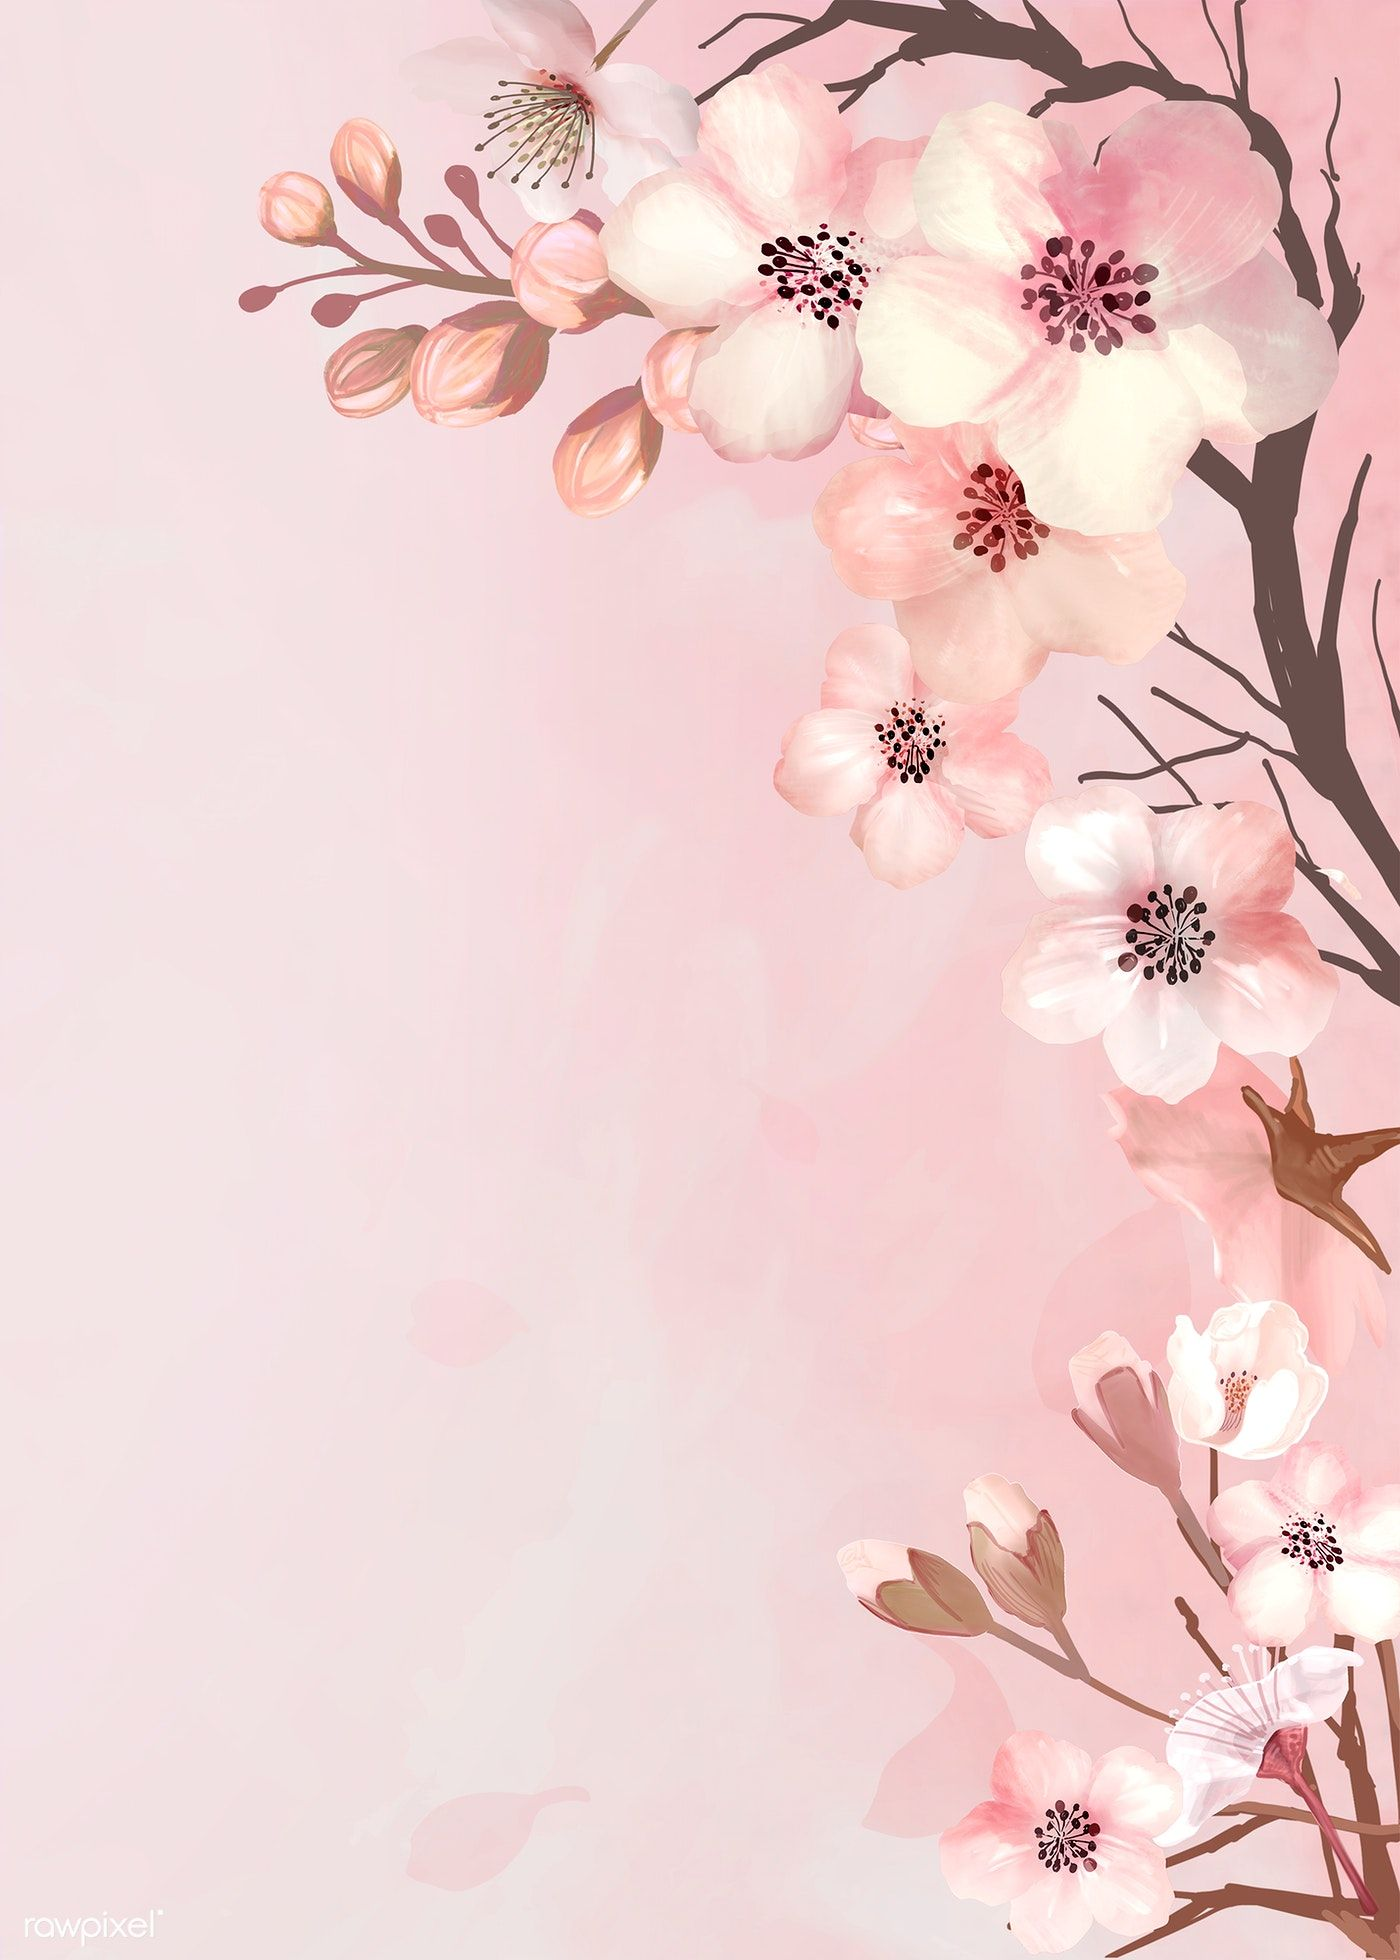 Download Premium Illustration Of Hand Drawn Cherry Blossoms On A Pink Cherry Blossom Wallpaper Cherry Blossom Background Pink Background